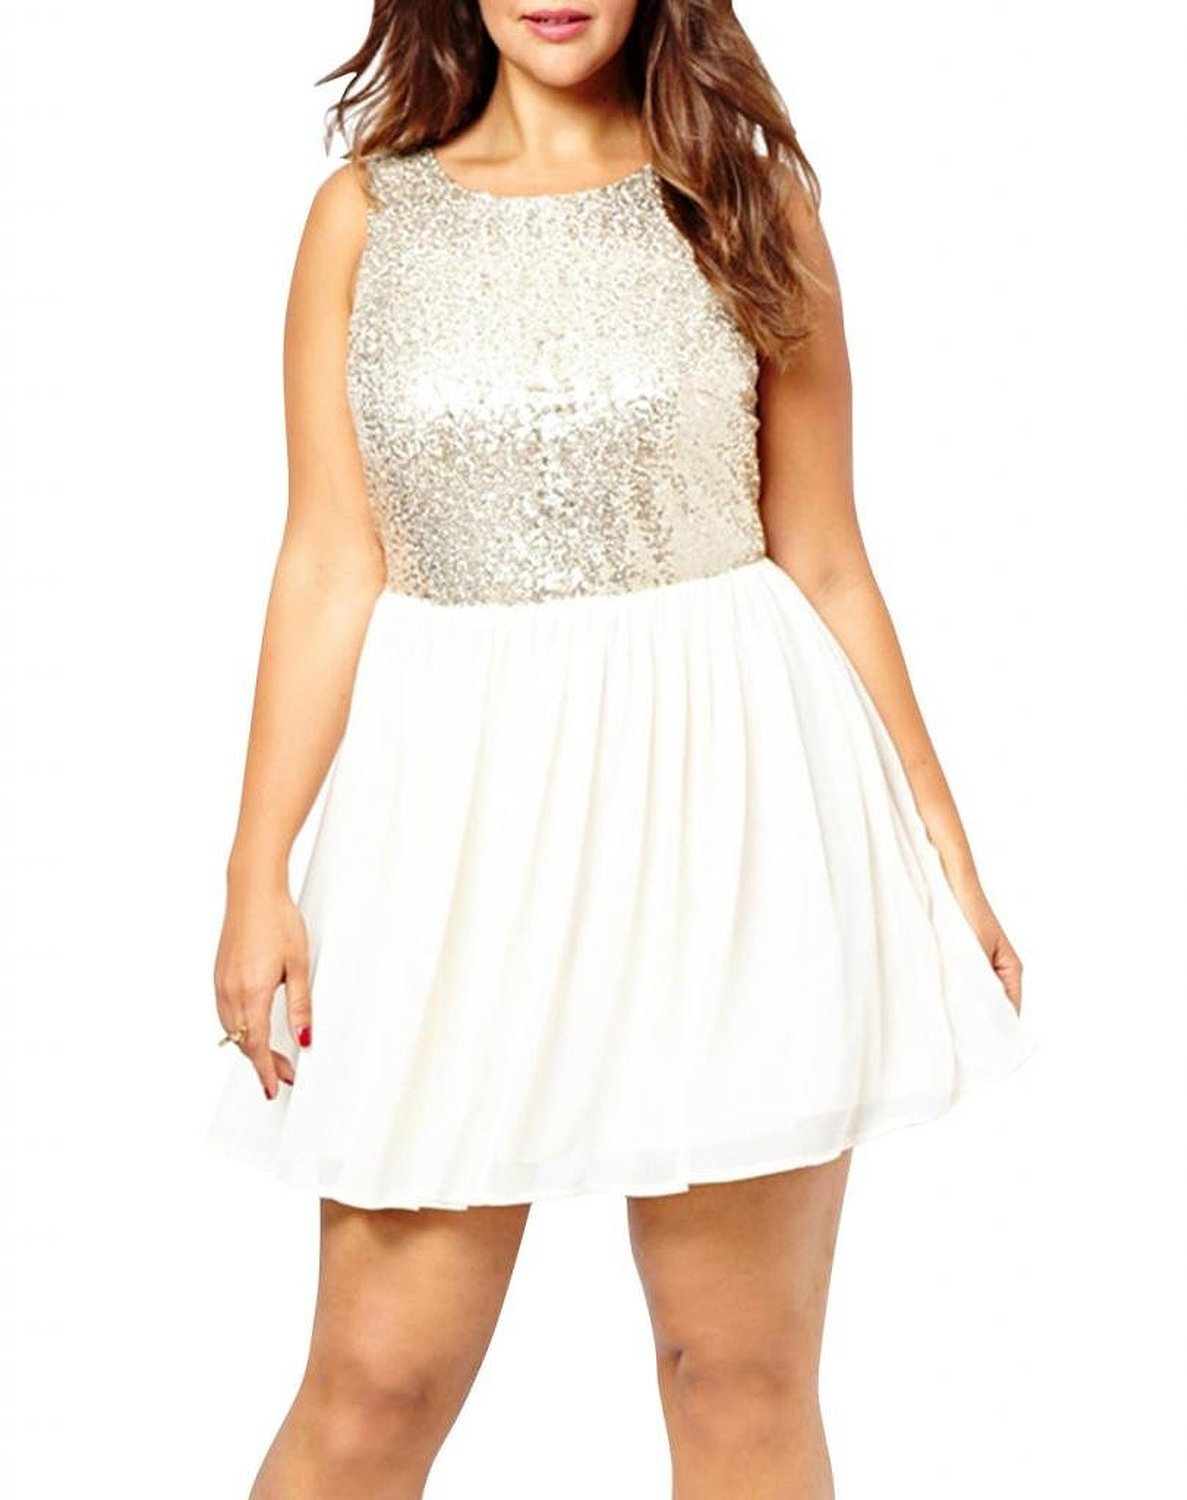 Romanse women's white embellished sequin crop top chiffon skater dress at amazon women's clothing store: